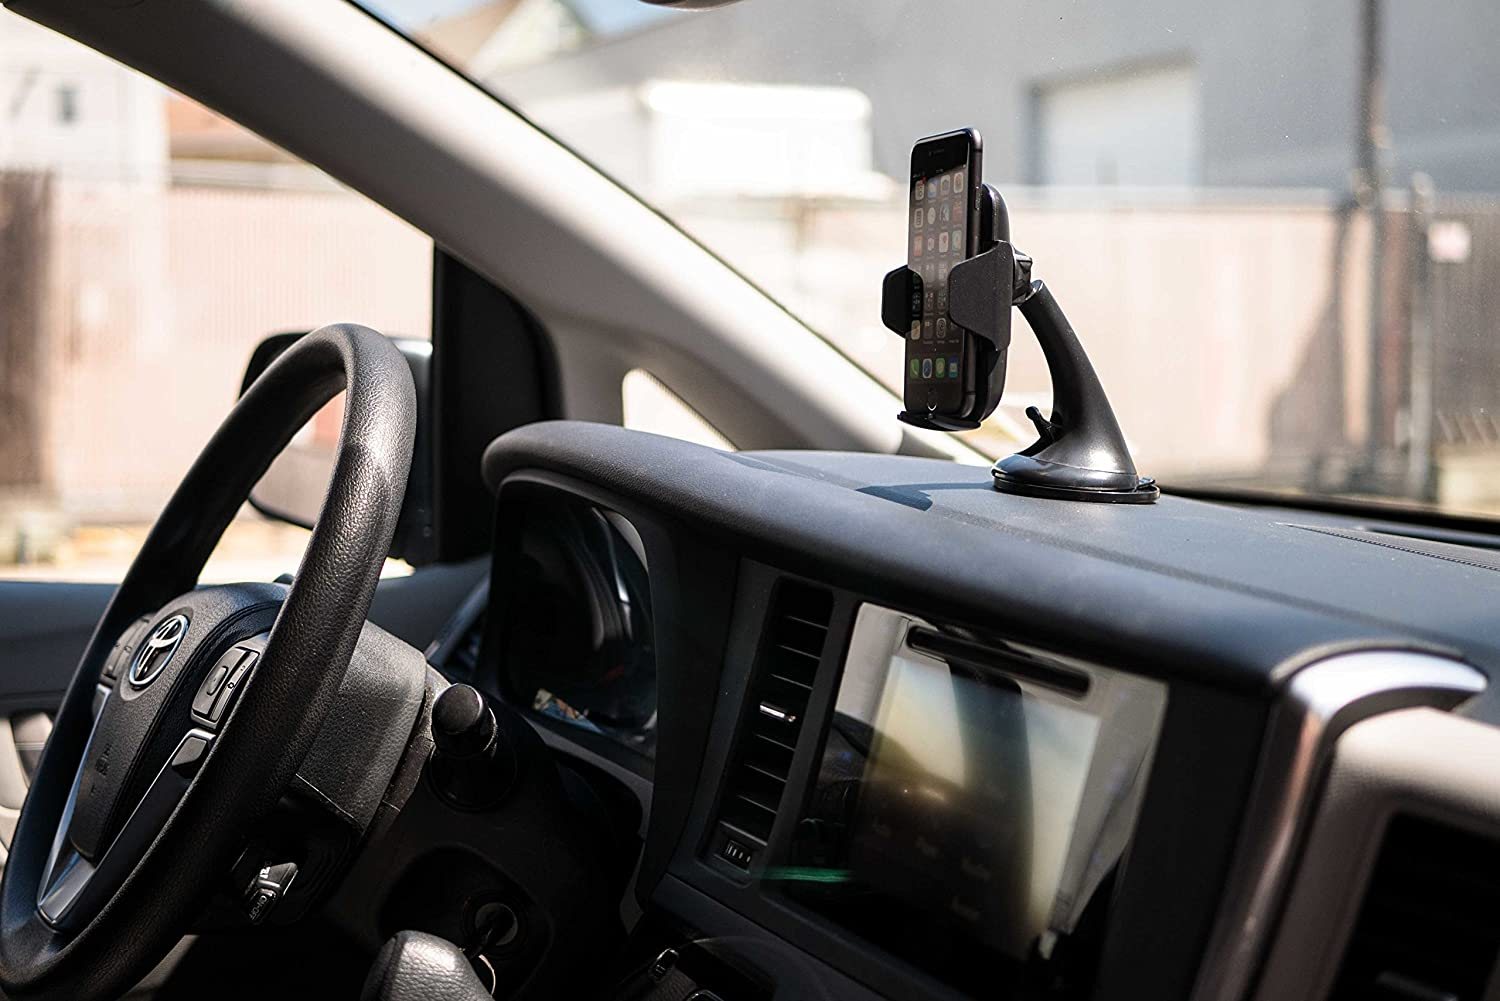 Rotates 360 8 Compatible w iPhone X Note /& All Androids 8 Plus Samsung Galaxy S8 Easy Clamp Holder IronTech Qi Wireless Telescopic Fast Charging Dashboard /& Windsheild Strong Suction Car Mount